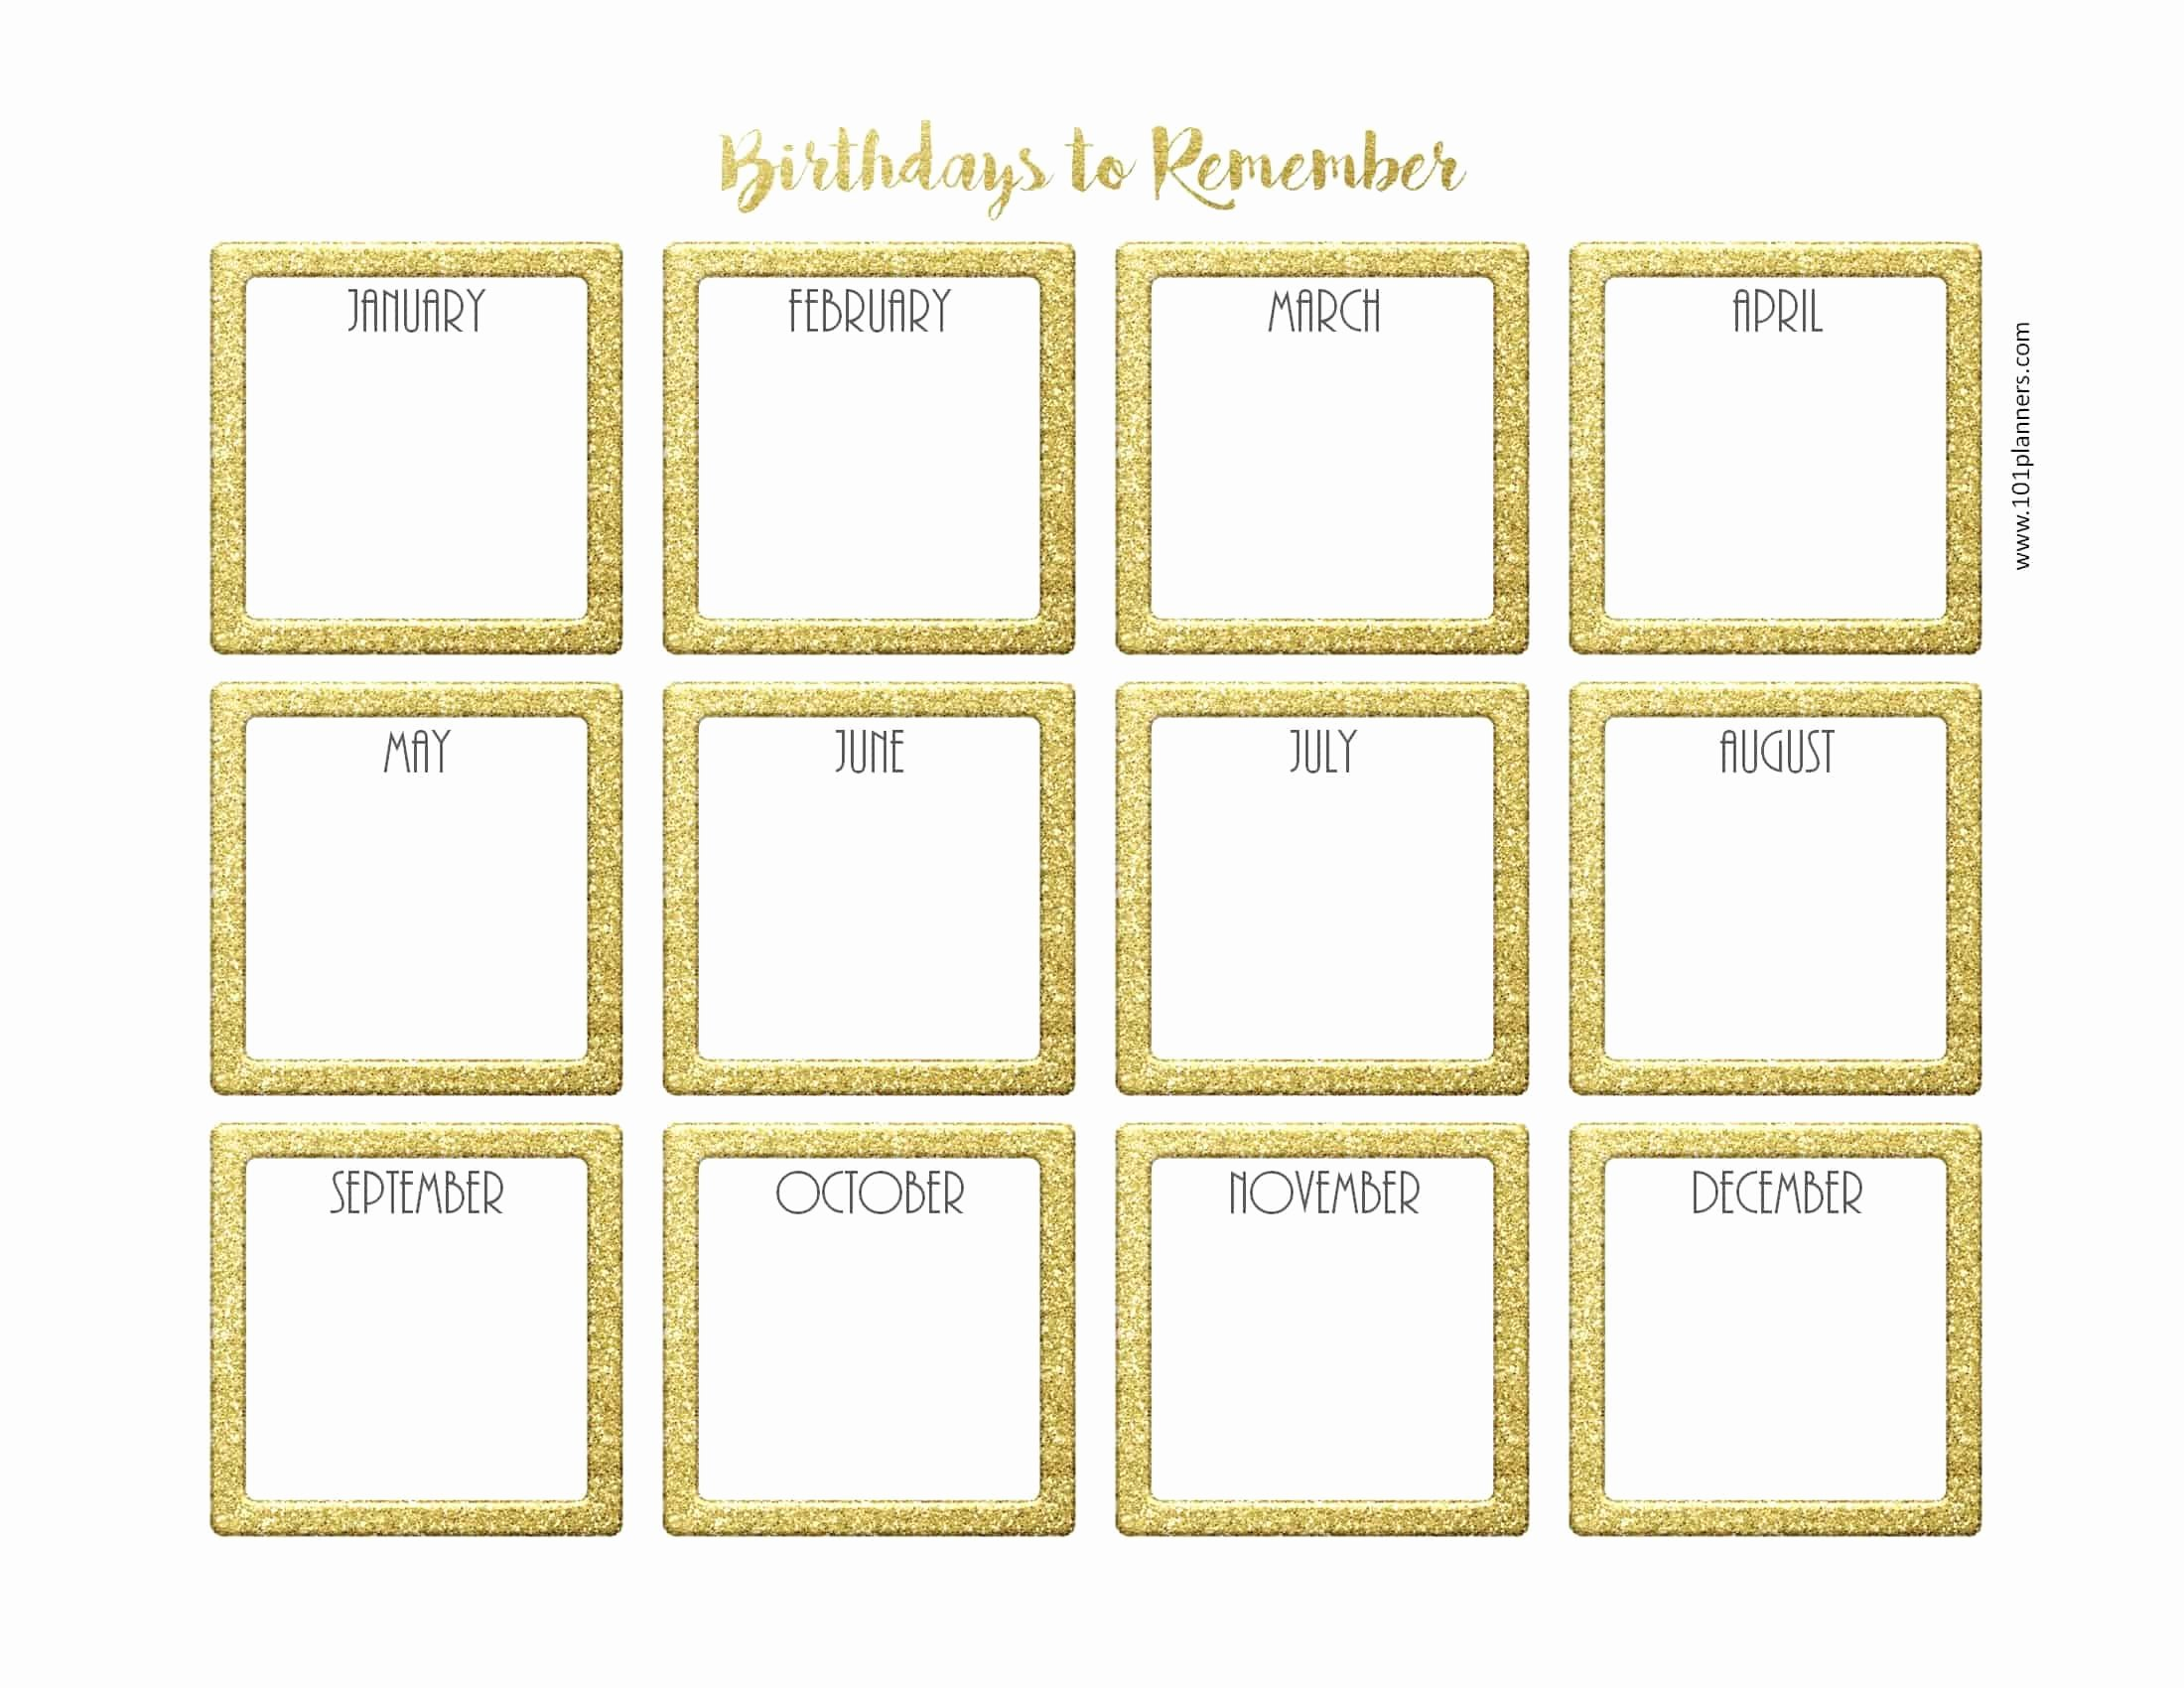 Printable Birthday Calendar Template Inspirational Free Birthday Calendar